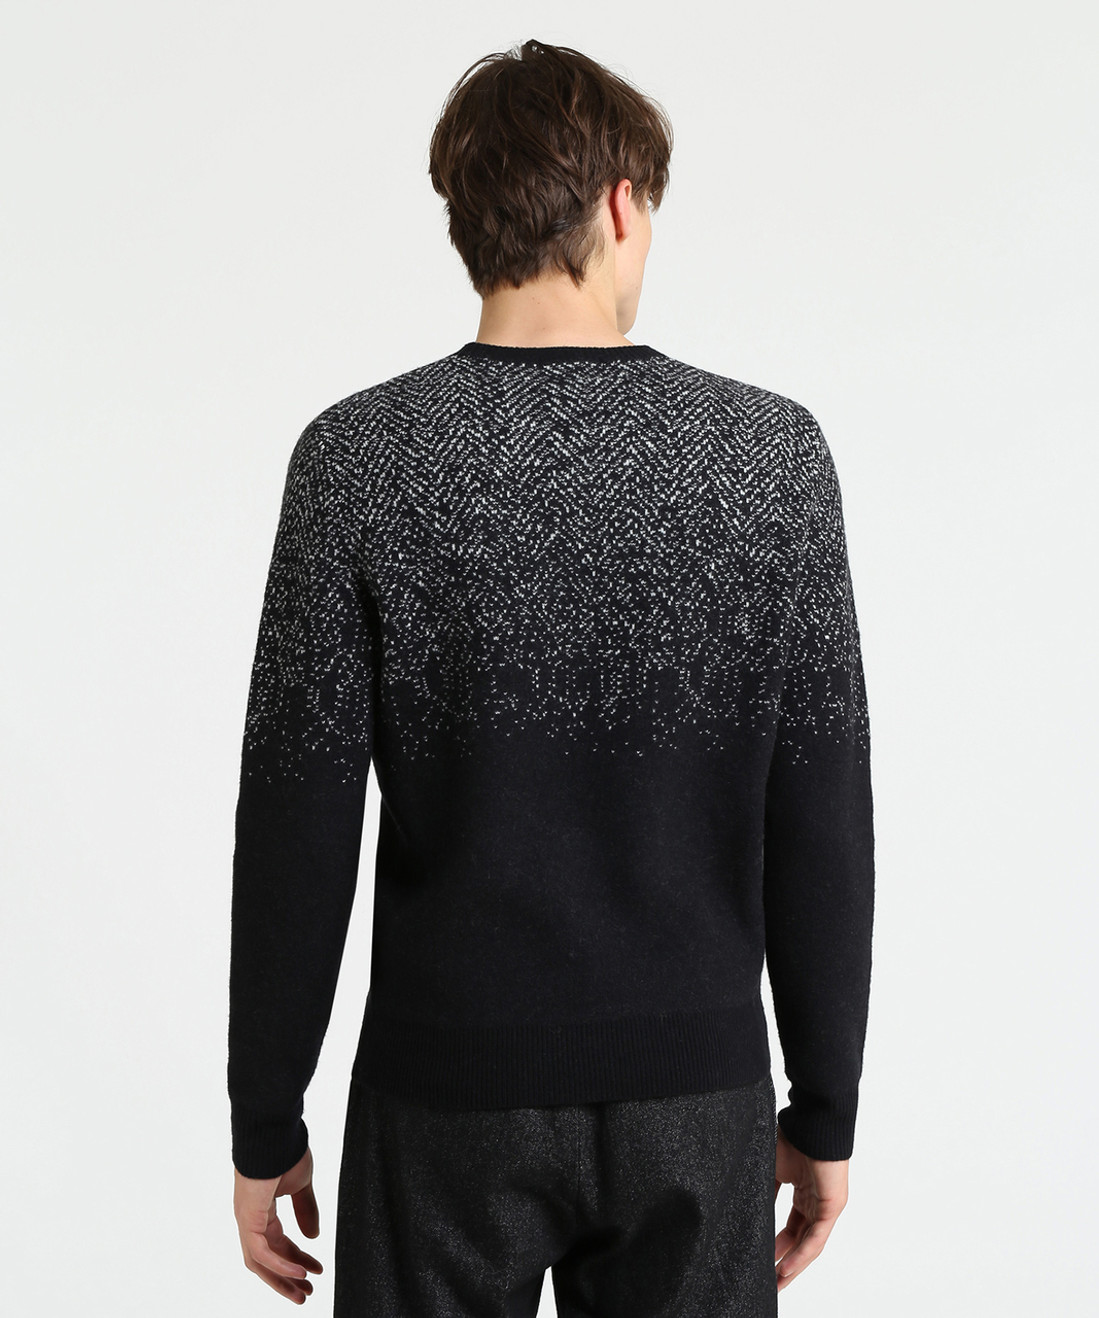 Men's Herringbone Sweater - John Rich & Bros.